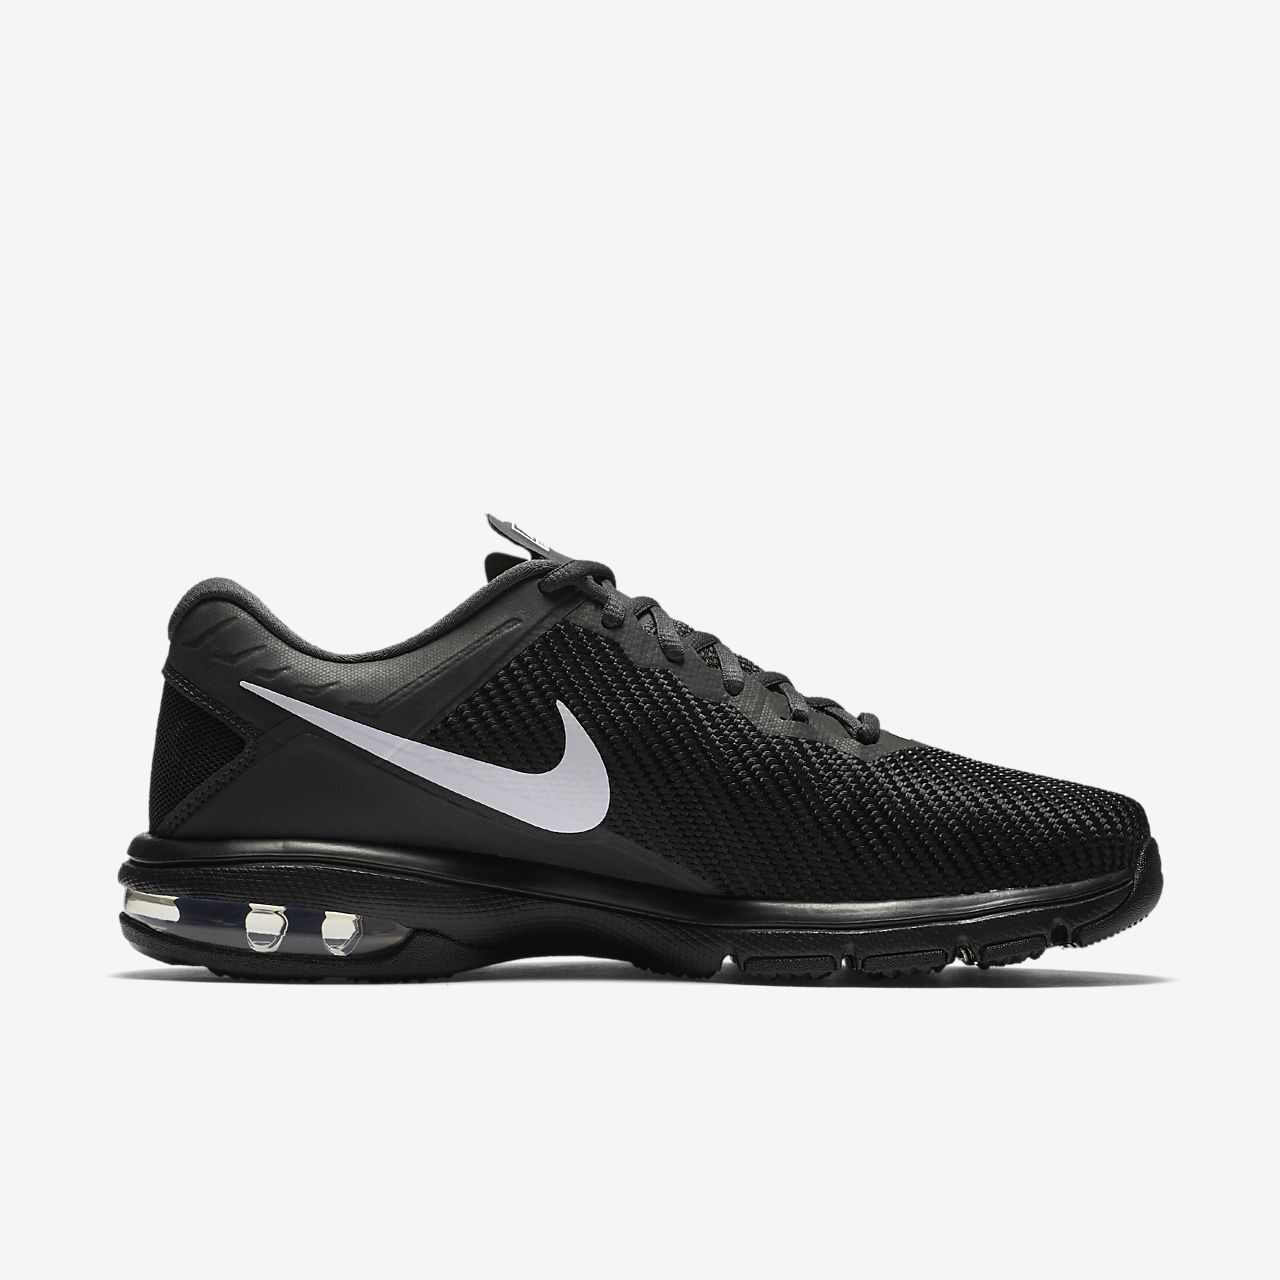 official photos a8a6a 183f4 ... Nike Air Max Full Ride TR 1.5 Men s Training Shoe